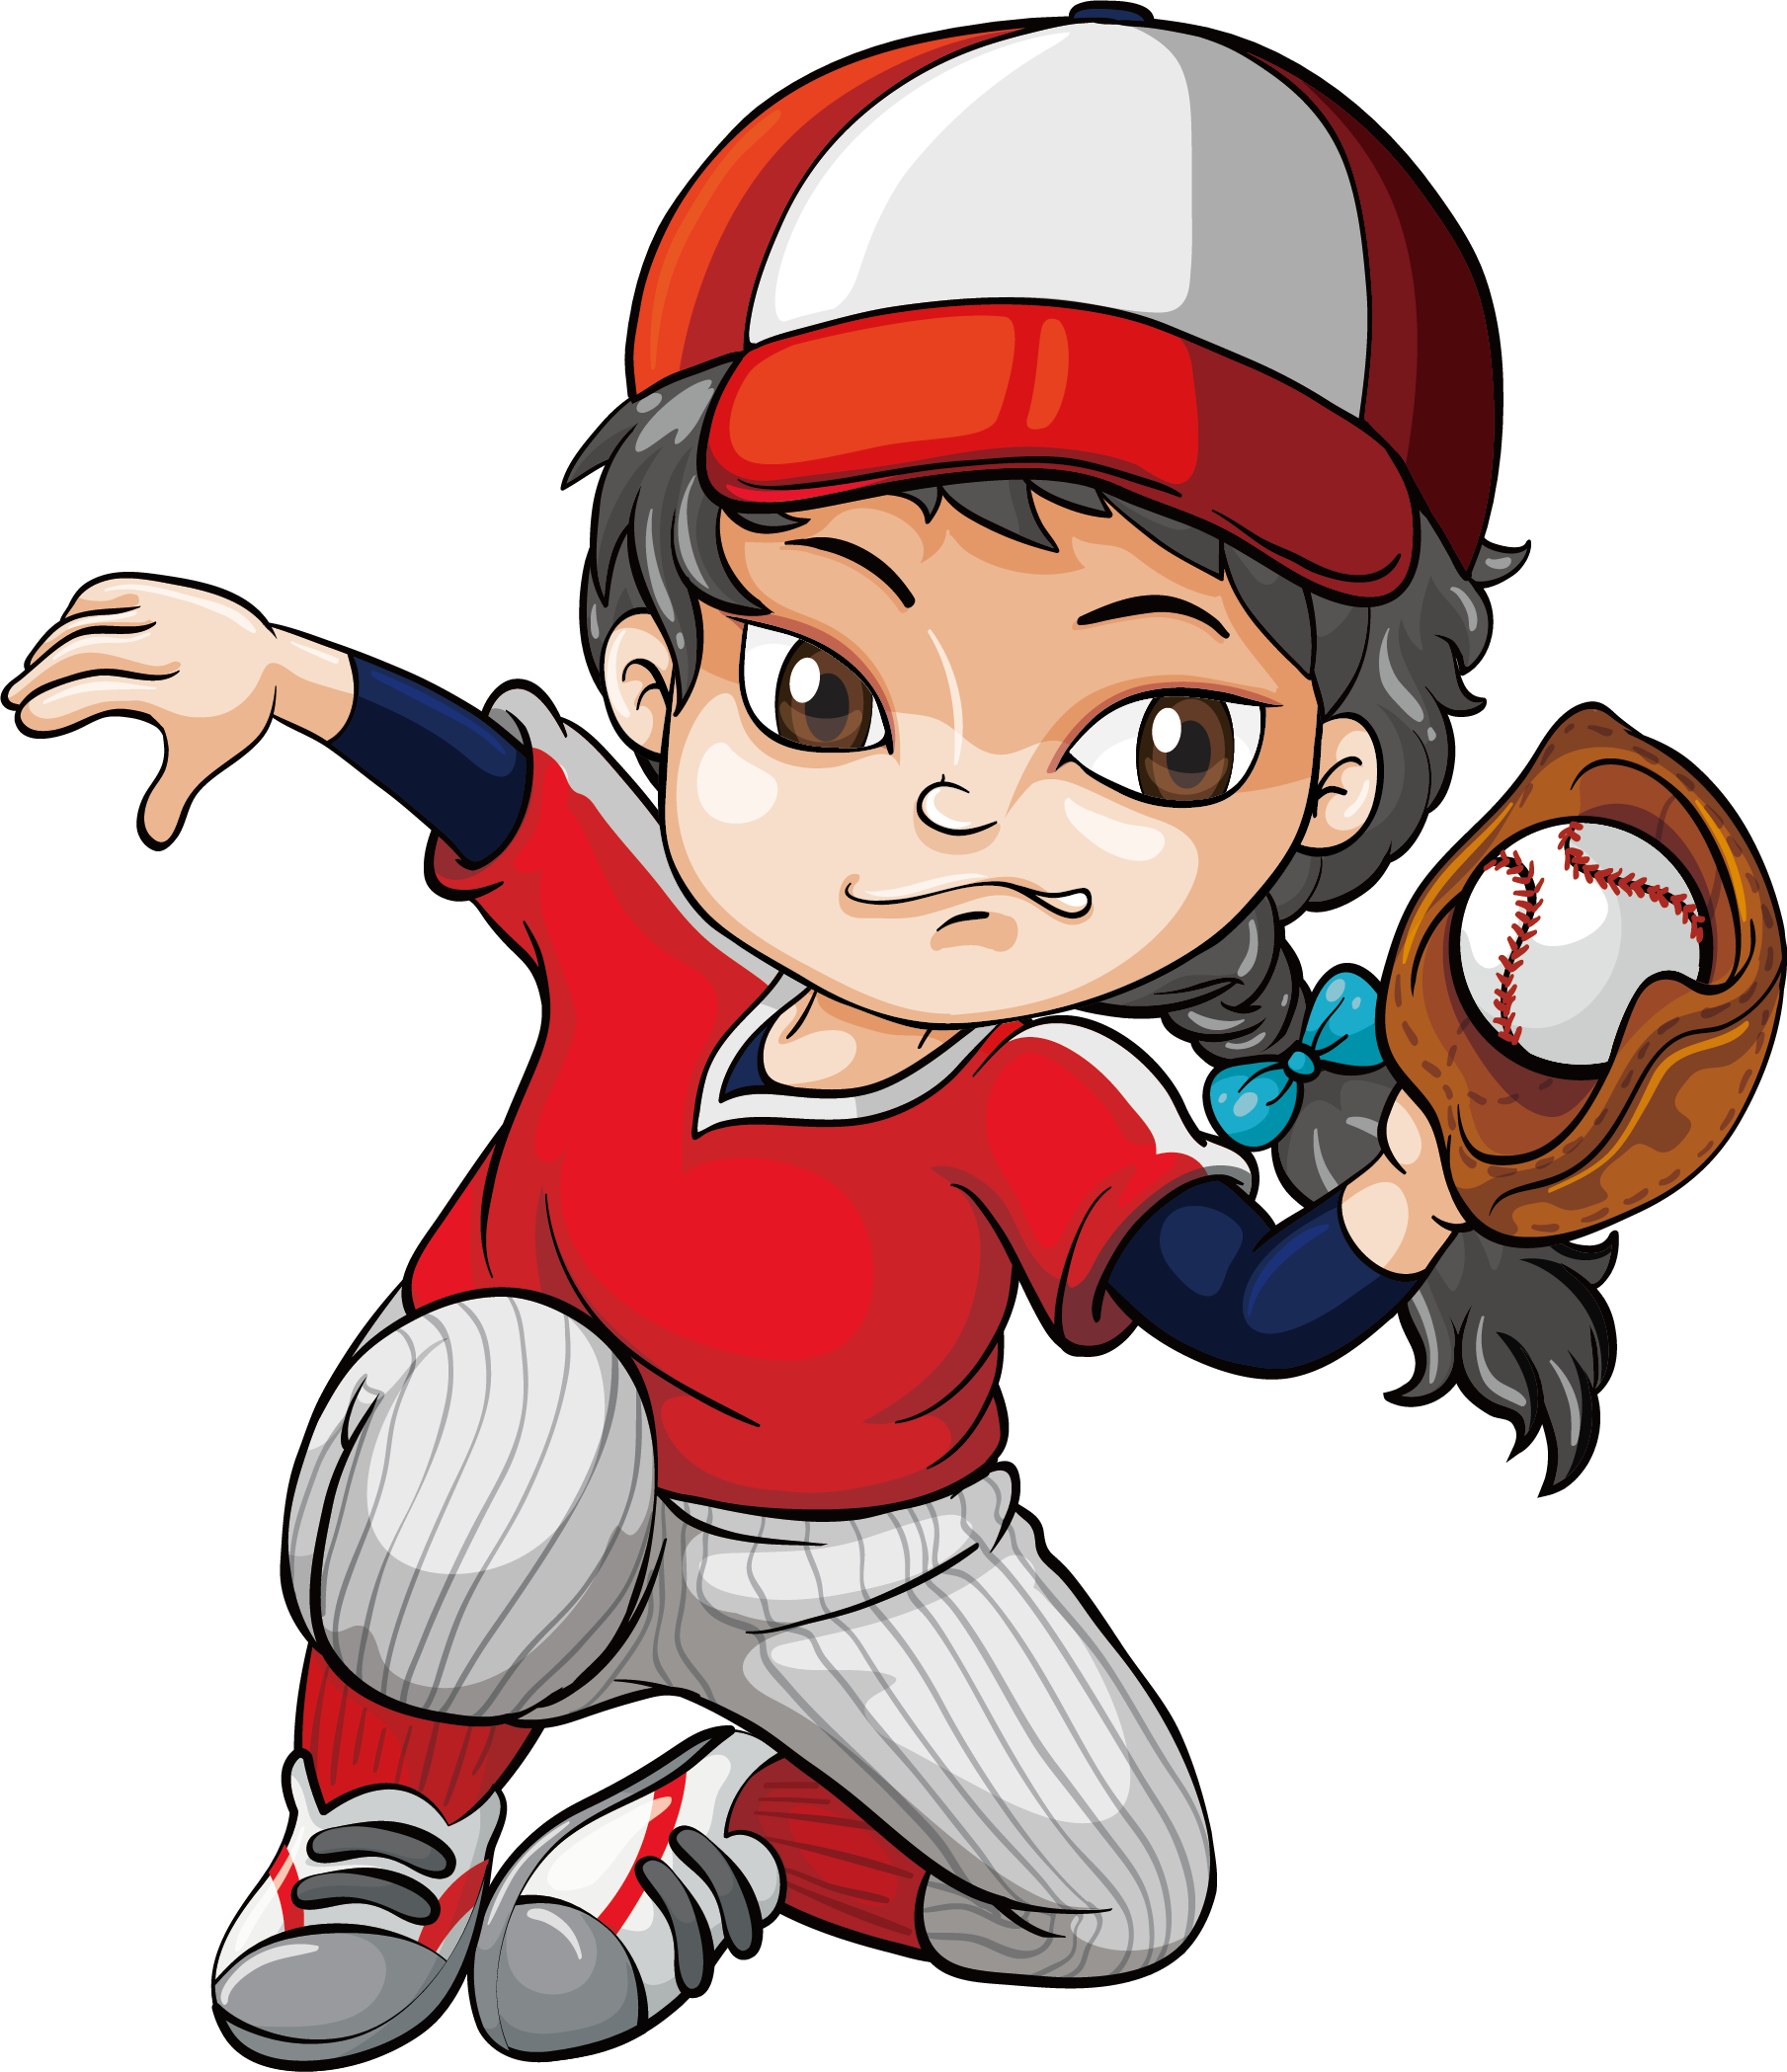 Kid baseball player clipart clipart images gallery for free download.